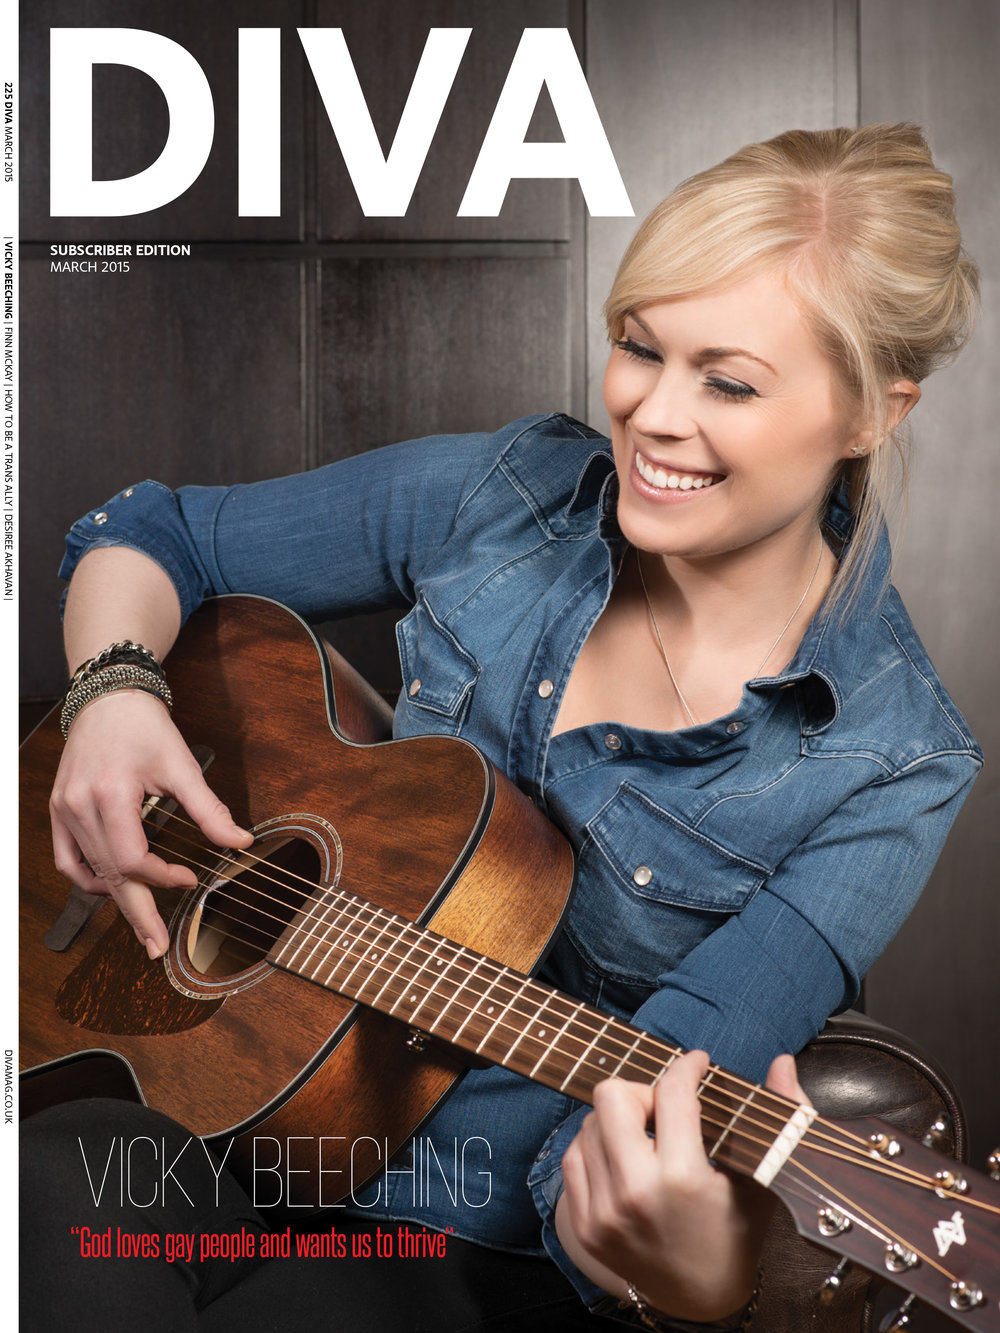 Tear Sheets - 1 - DIVA Magazine March 2015 - Subscriber Edition.jpg